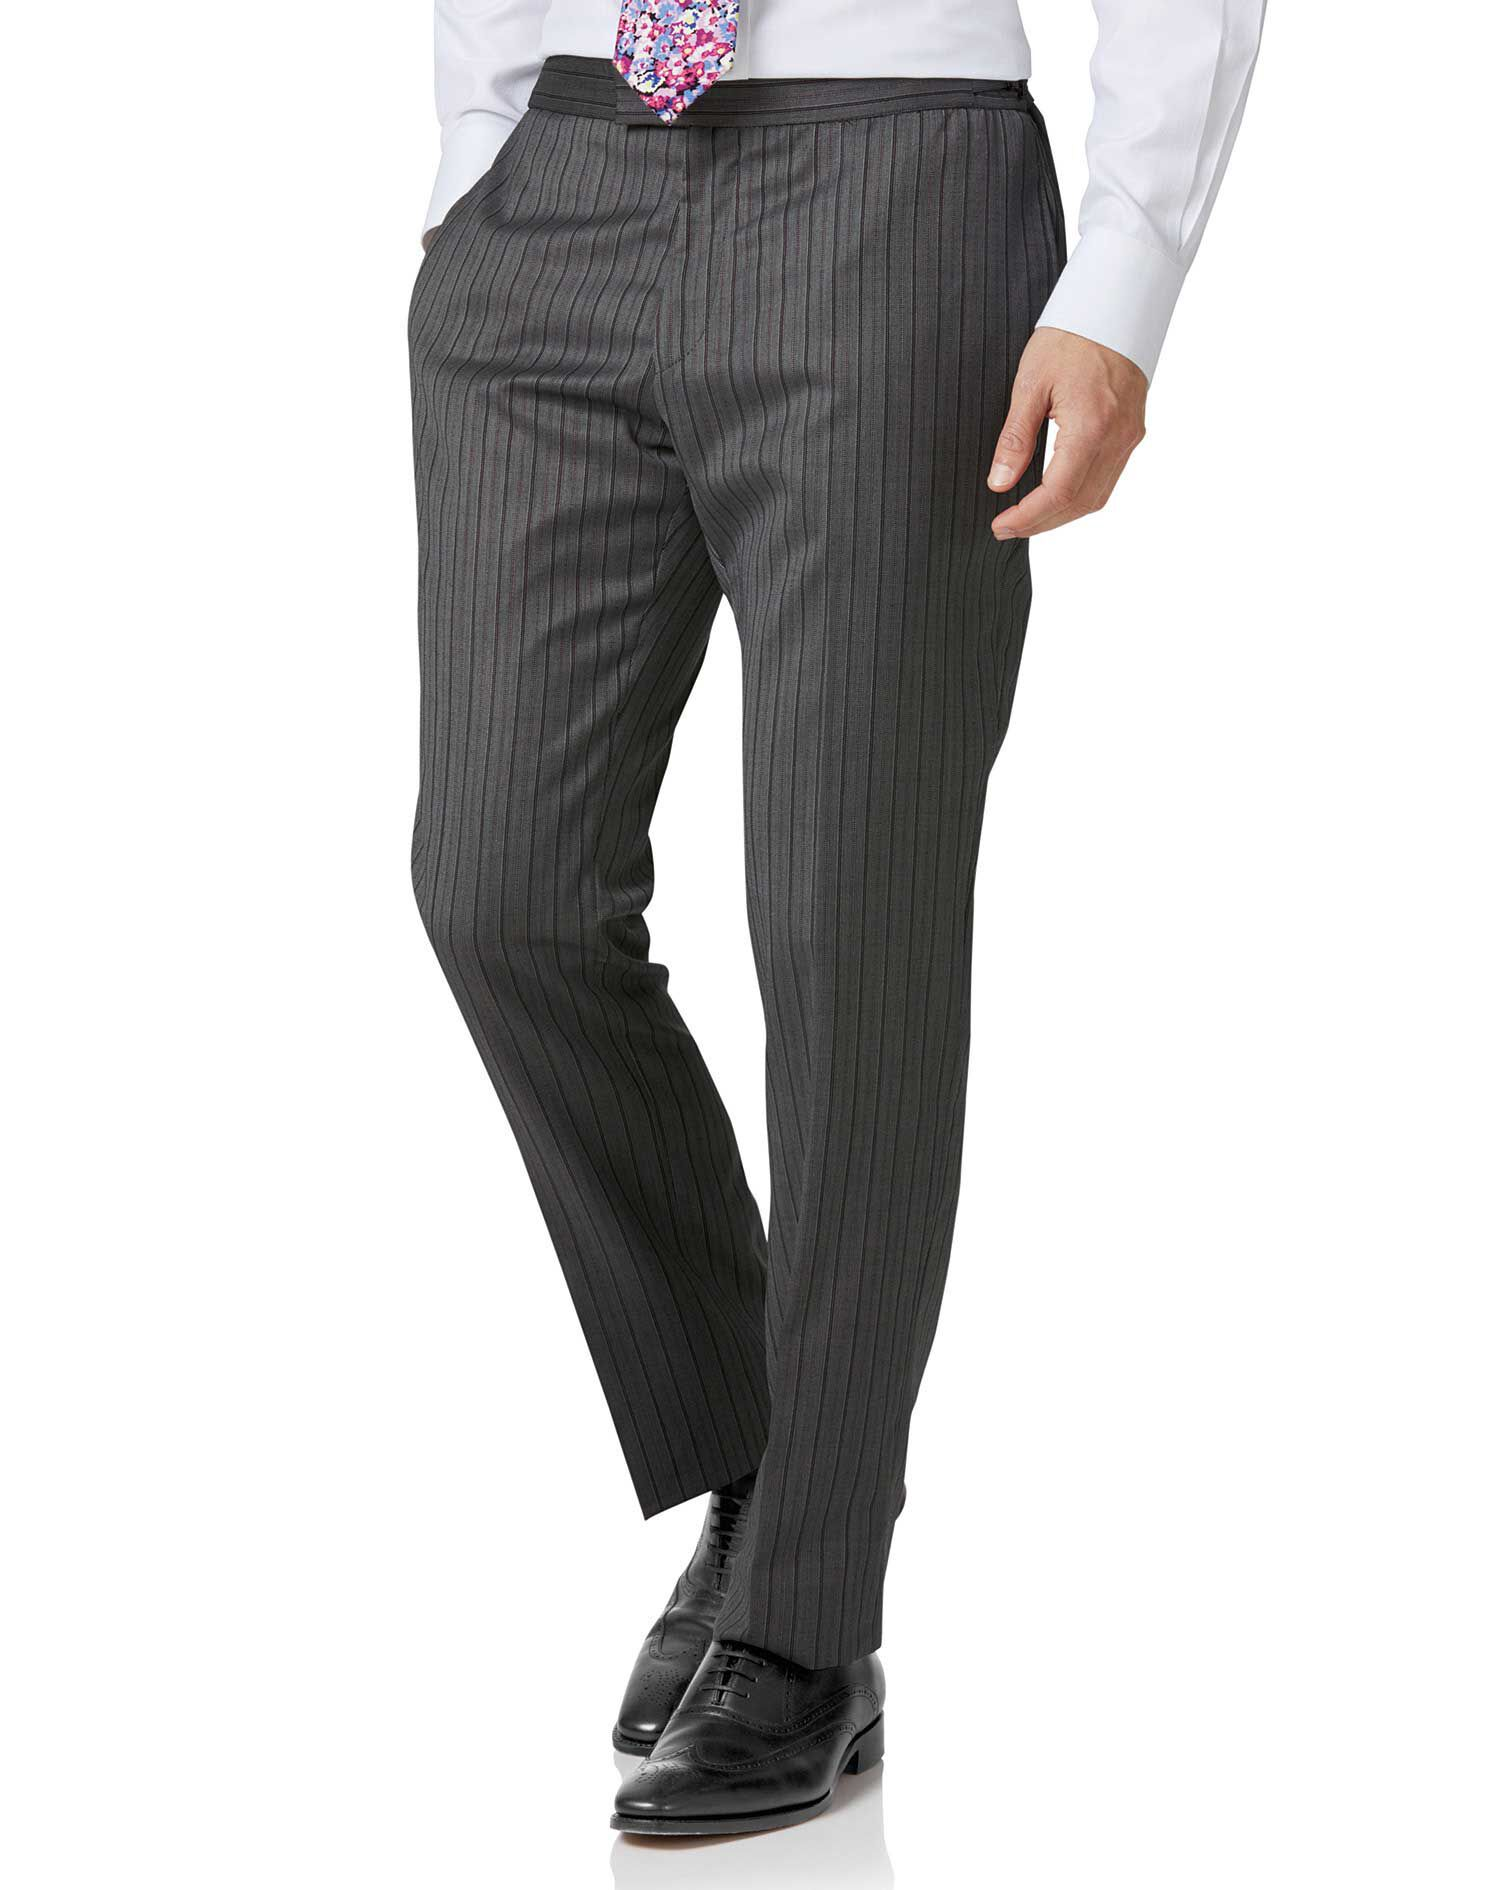 Edwardian Men's Pants Charles Tyrwhitt Charcoal slim fit morning suit trousers £120.00 AT vintagedancer.com